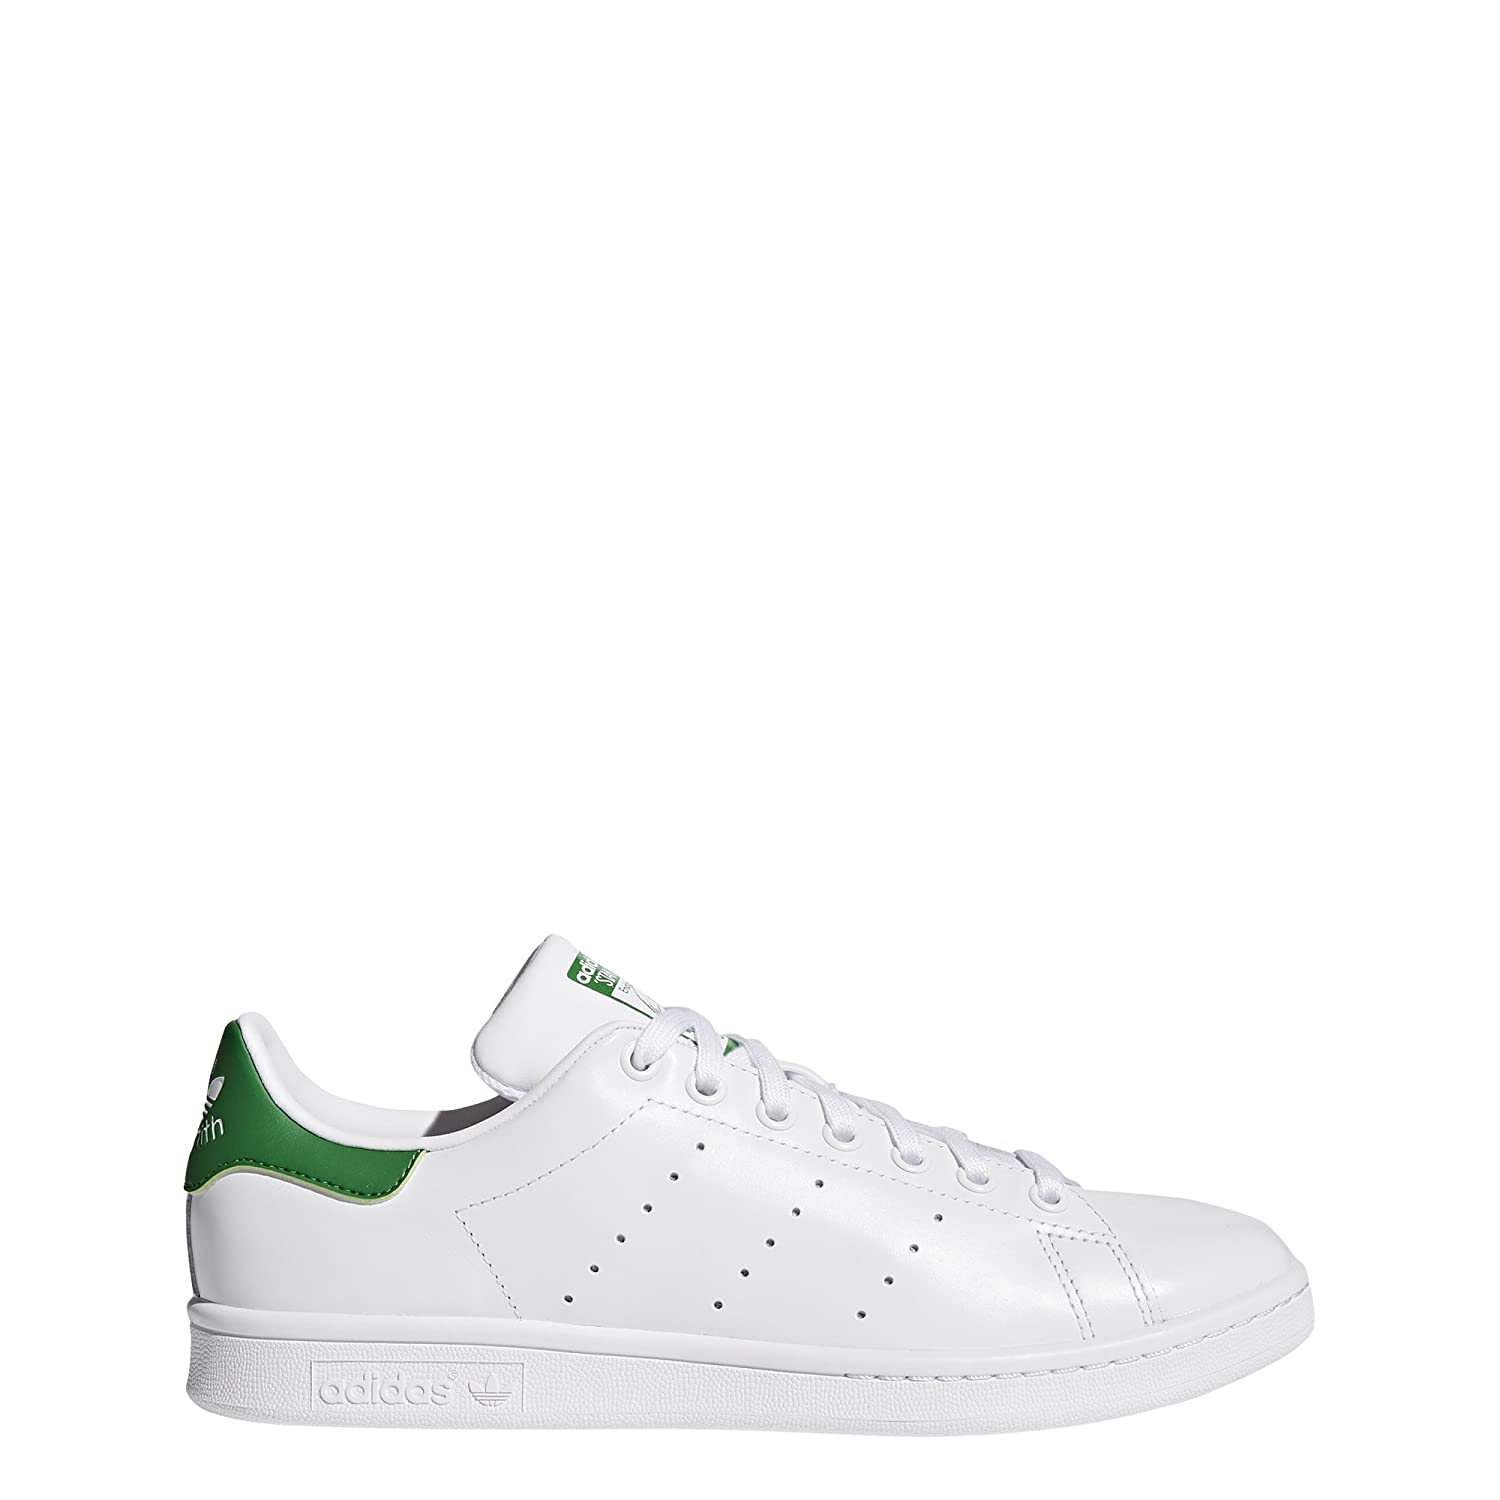 on sale faec8 6f38f adidas Originals Men's Stan Smith Vulc Running Shoe